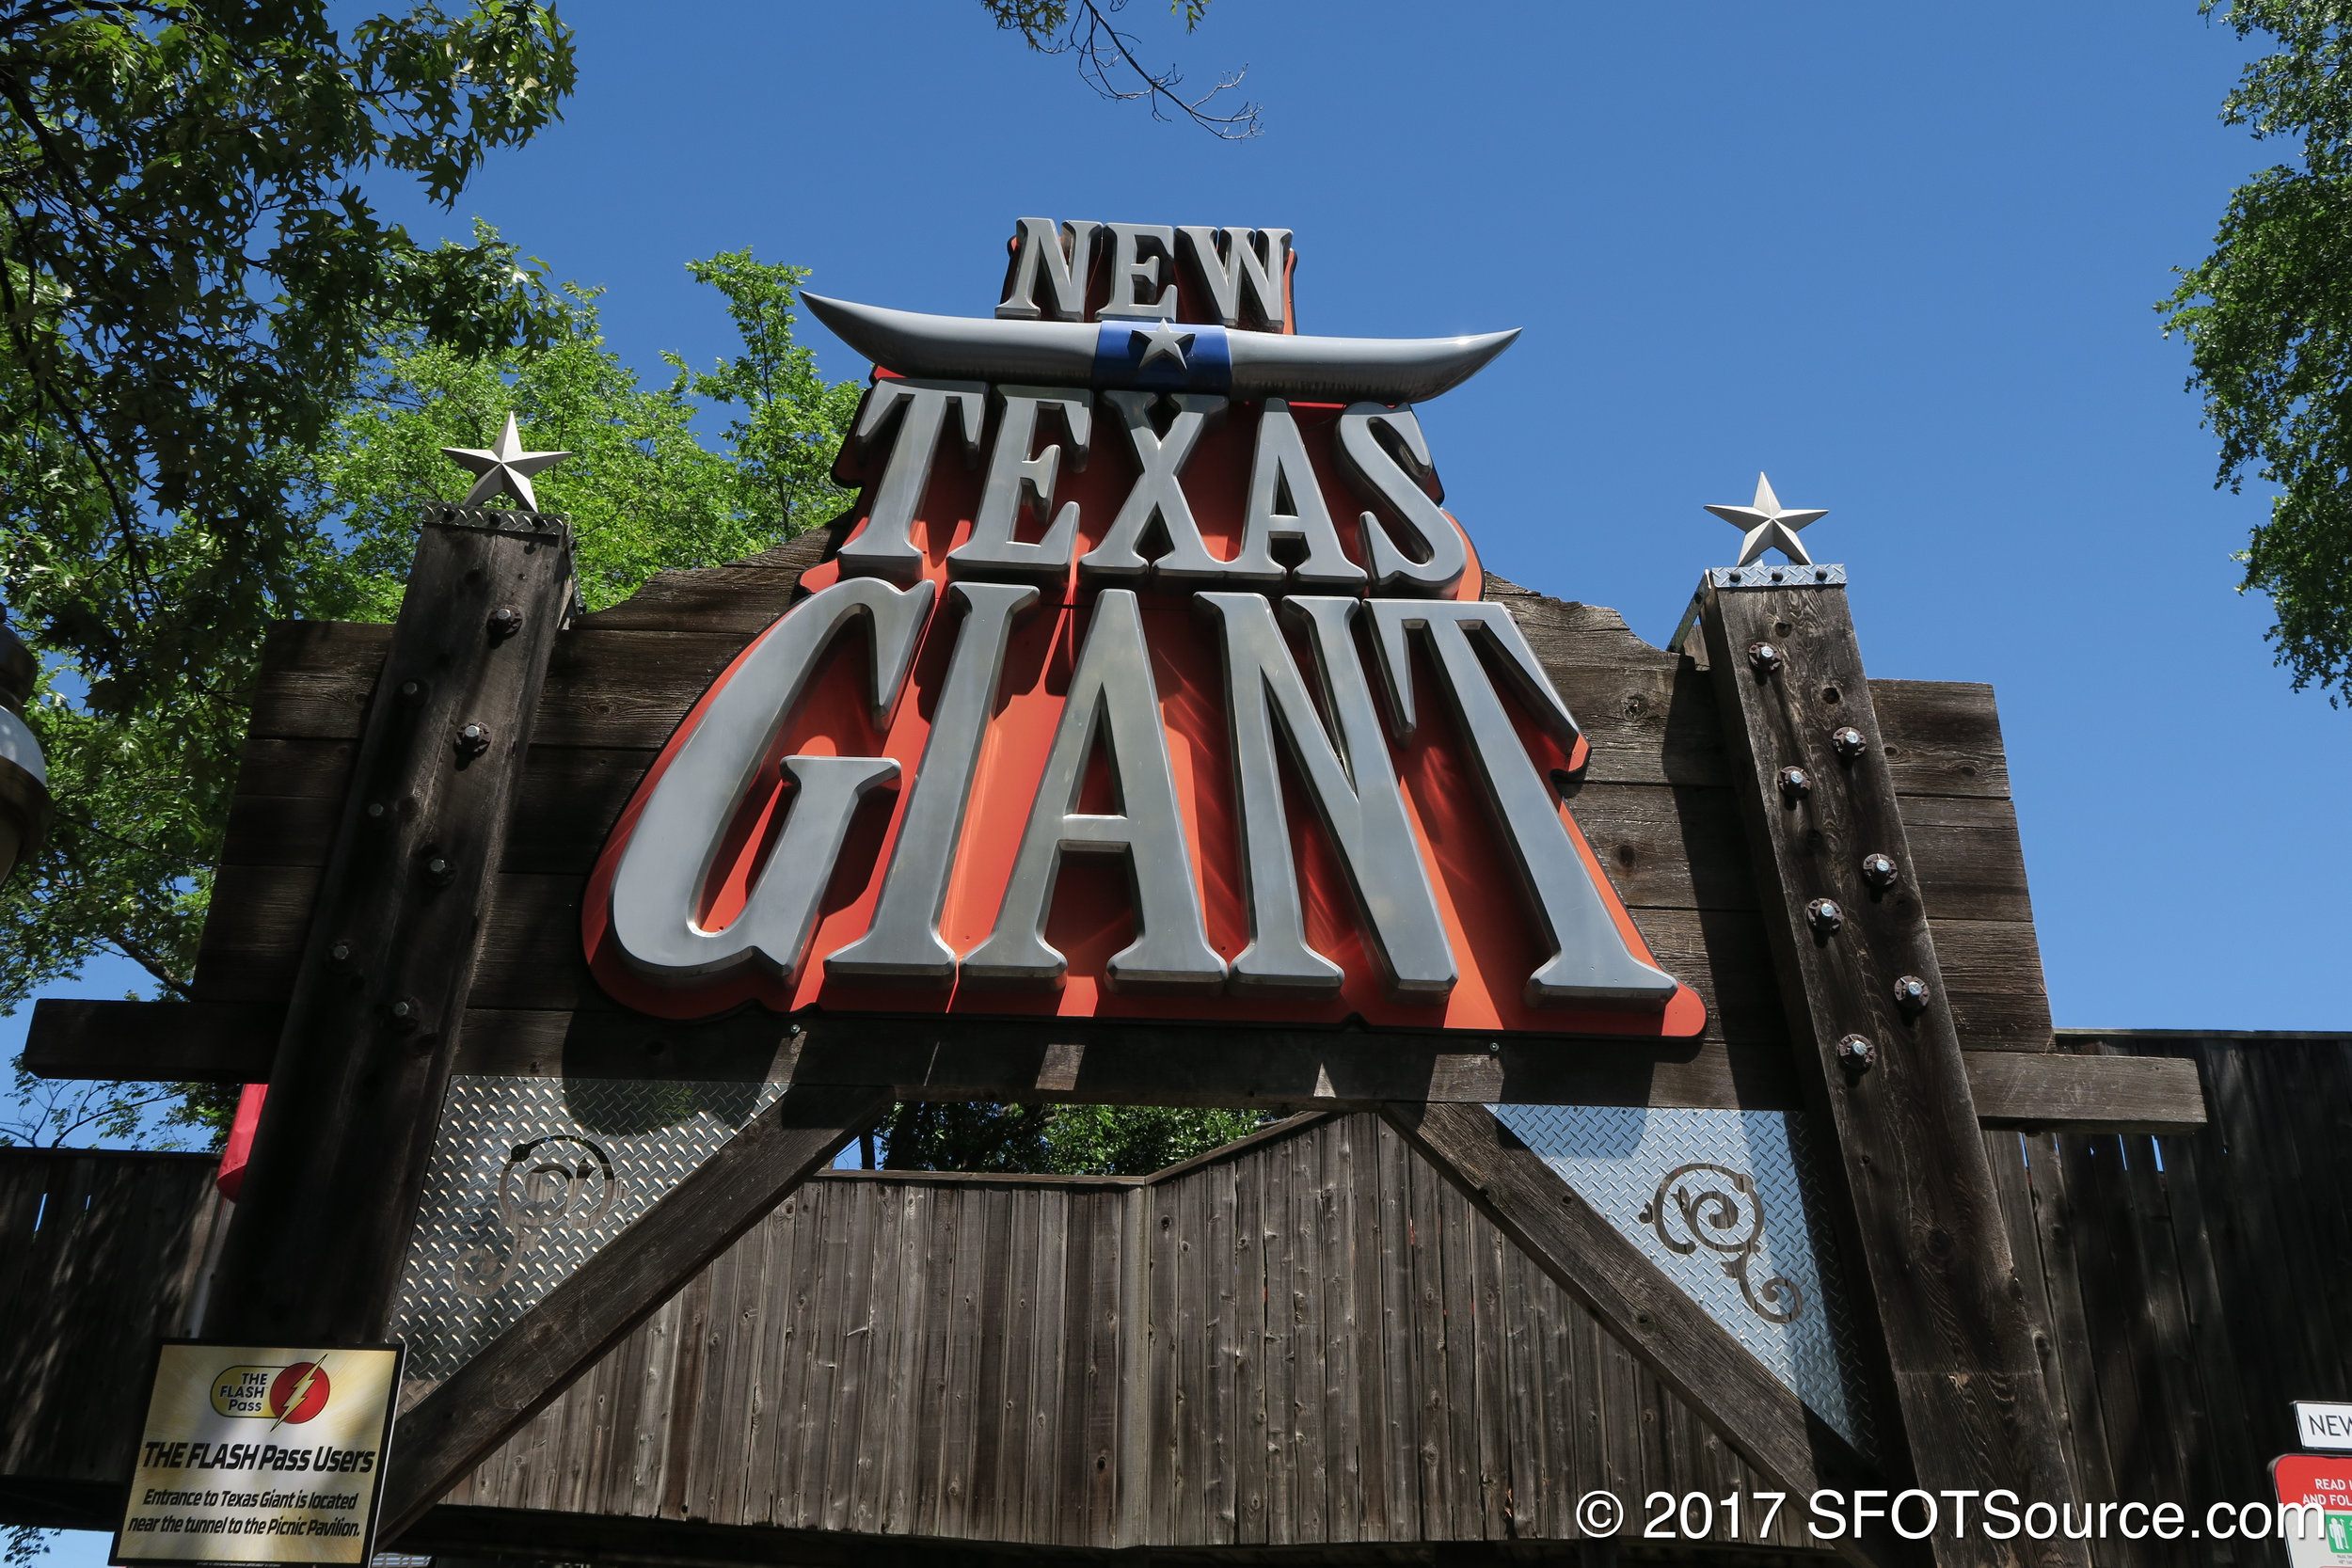 The main entrance and signage to New Texas Giant.